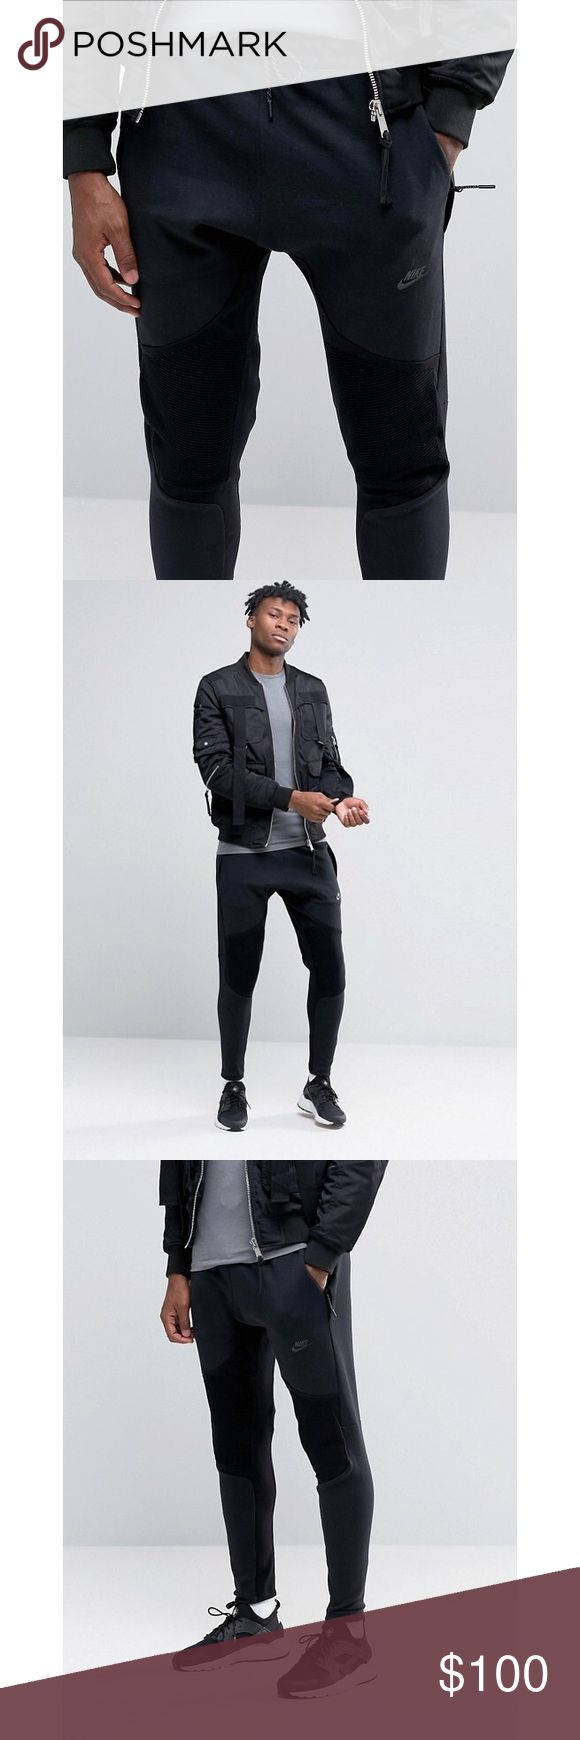 Nike Tech Fleece + Tech Knit Panel Joggers •Mens tech fleece joggers with tech knit panels from Nike. Elastic and drawstring at waist. Two pockets at each side and one extra pocket at right side, with zipper closure. Printed logo at left side. 66% Cotton 34% Polyester.  •Men's size Medium, true to size.  •New with tag.  •No trades, no holds. Nike Pants Sweatpants & Joggers